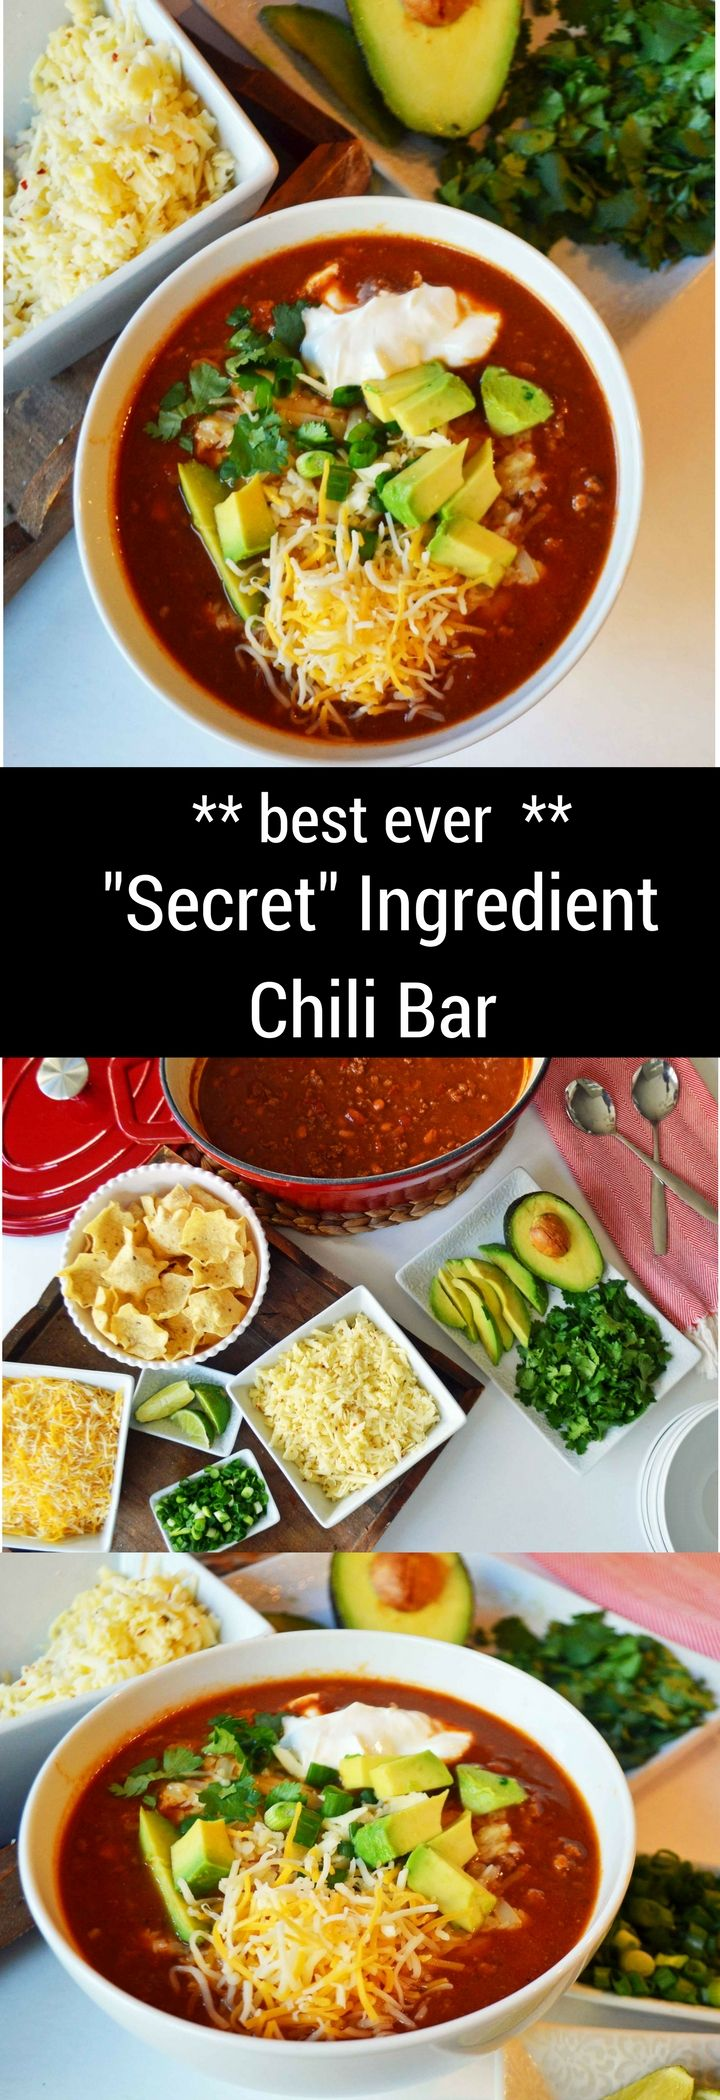 Award Winning Chili Recipe with TWO secret ingredients that make all the difference. It's easy to make and can even be made ahead of time and freezes so well. It's the recipe you need to win your next Chili Cook-Off Contest.